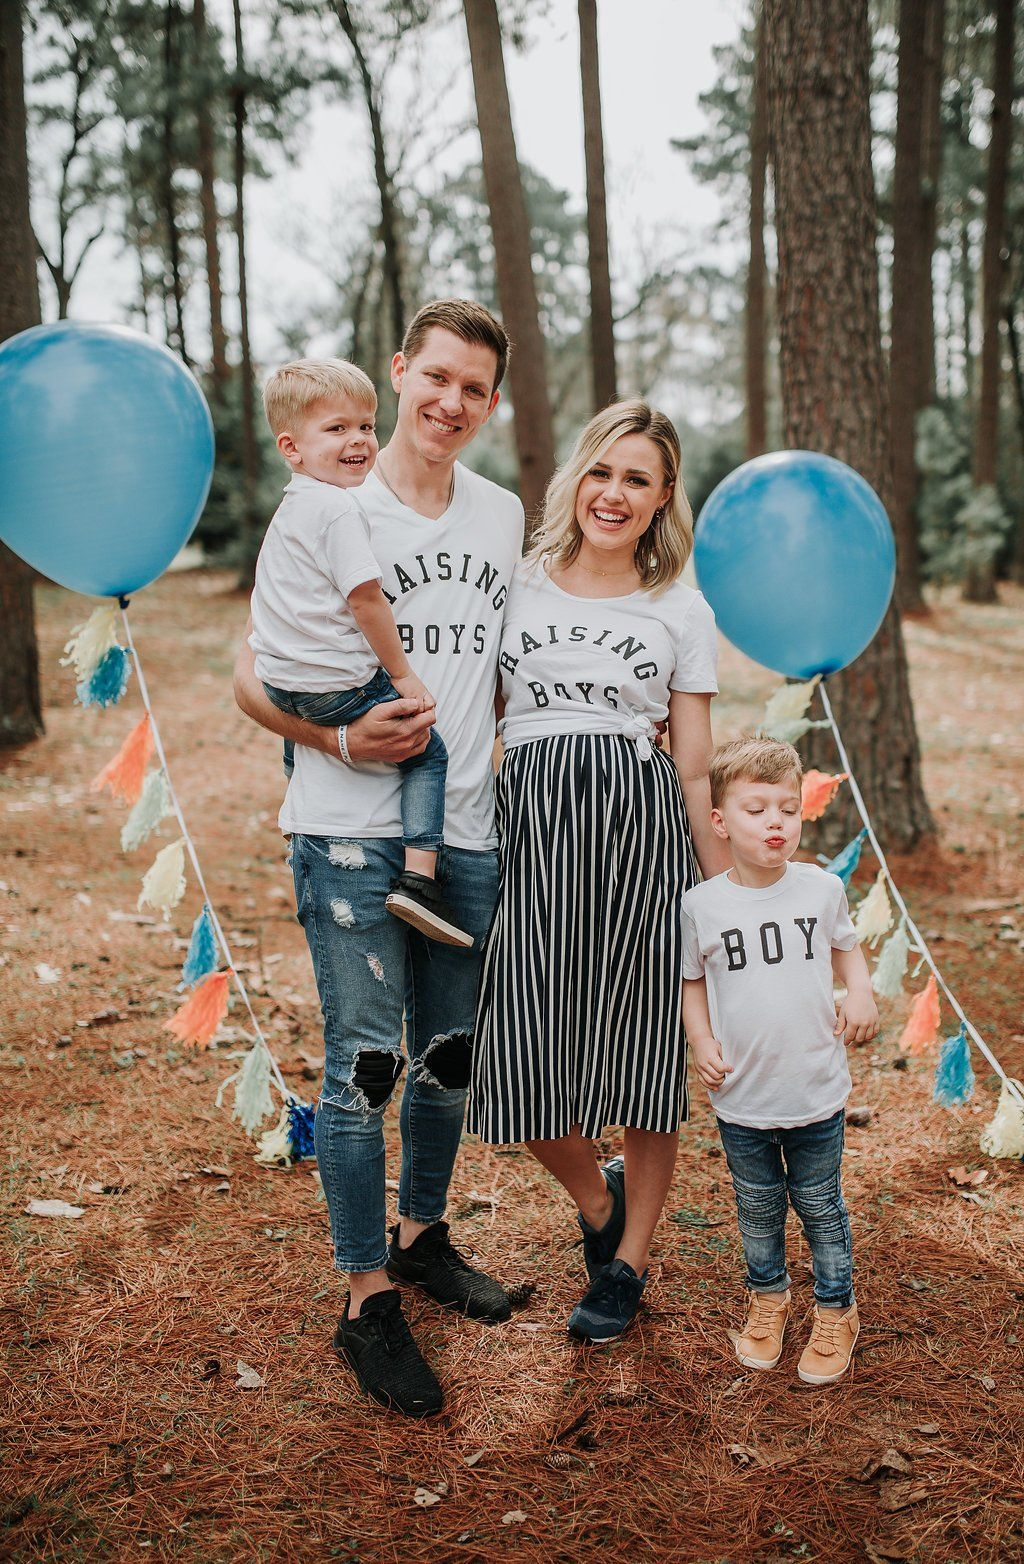 Gender Reveal Gender Reveal Ideas Gender Reveal Family Photos Uptown With Elly Brown Gender Reveal Gender Reveal Ideas